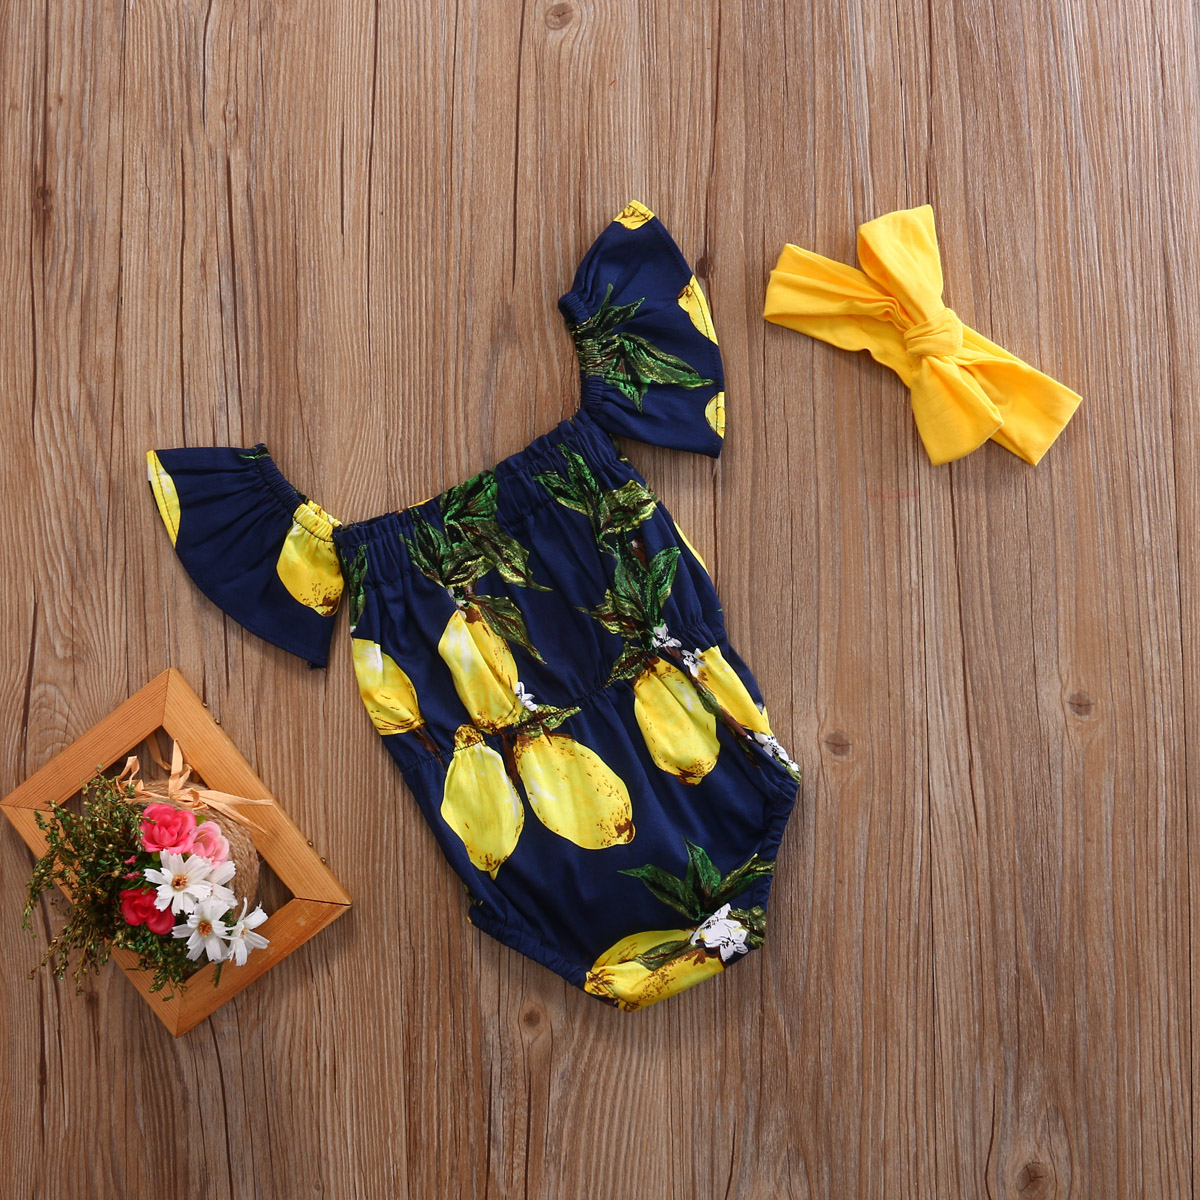 Cute-Newborn-Baby-Girl-Clothes-2017-Summer-Off-shoulder-Pear-Printed-Toddler-Kids-Jumpsuit-Headband-Outfits-Sunsuit-Clothing-3